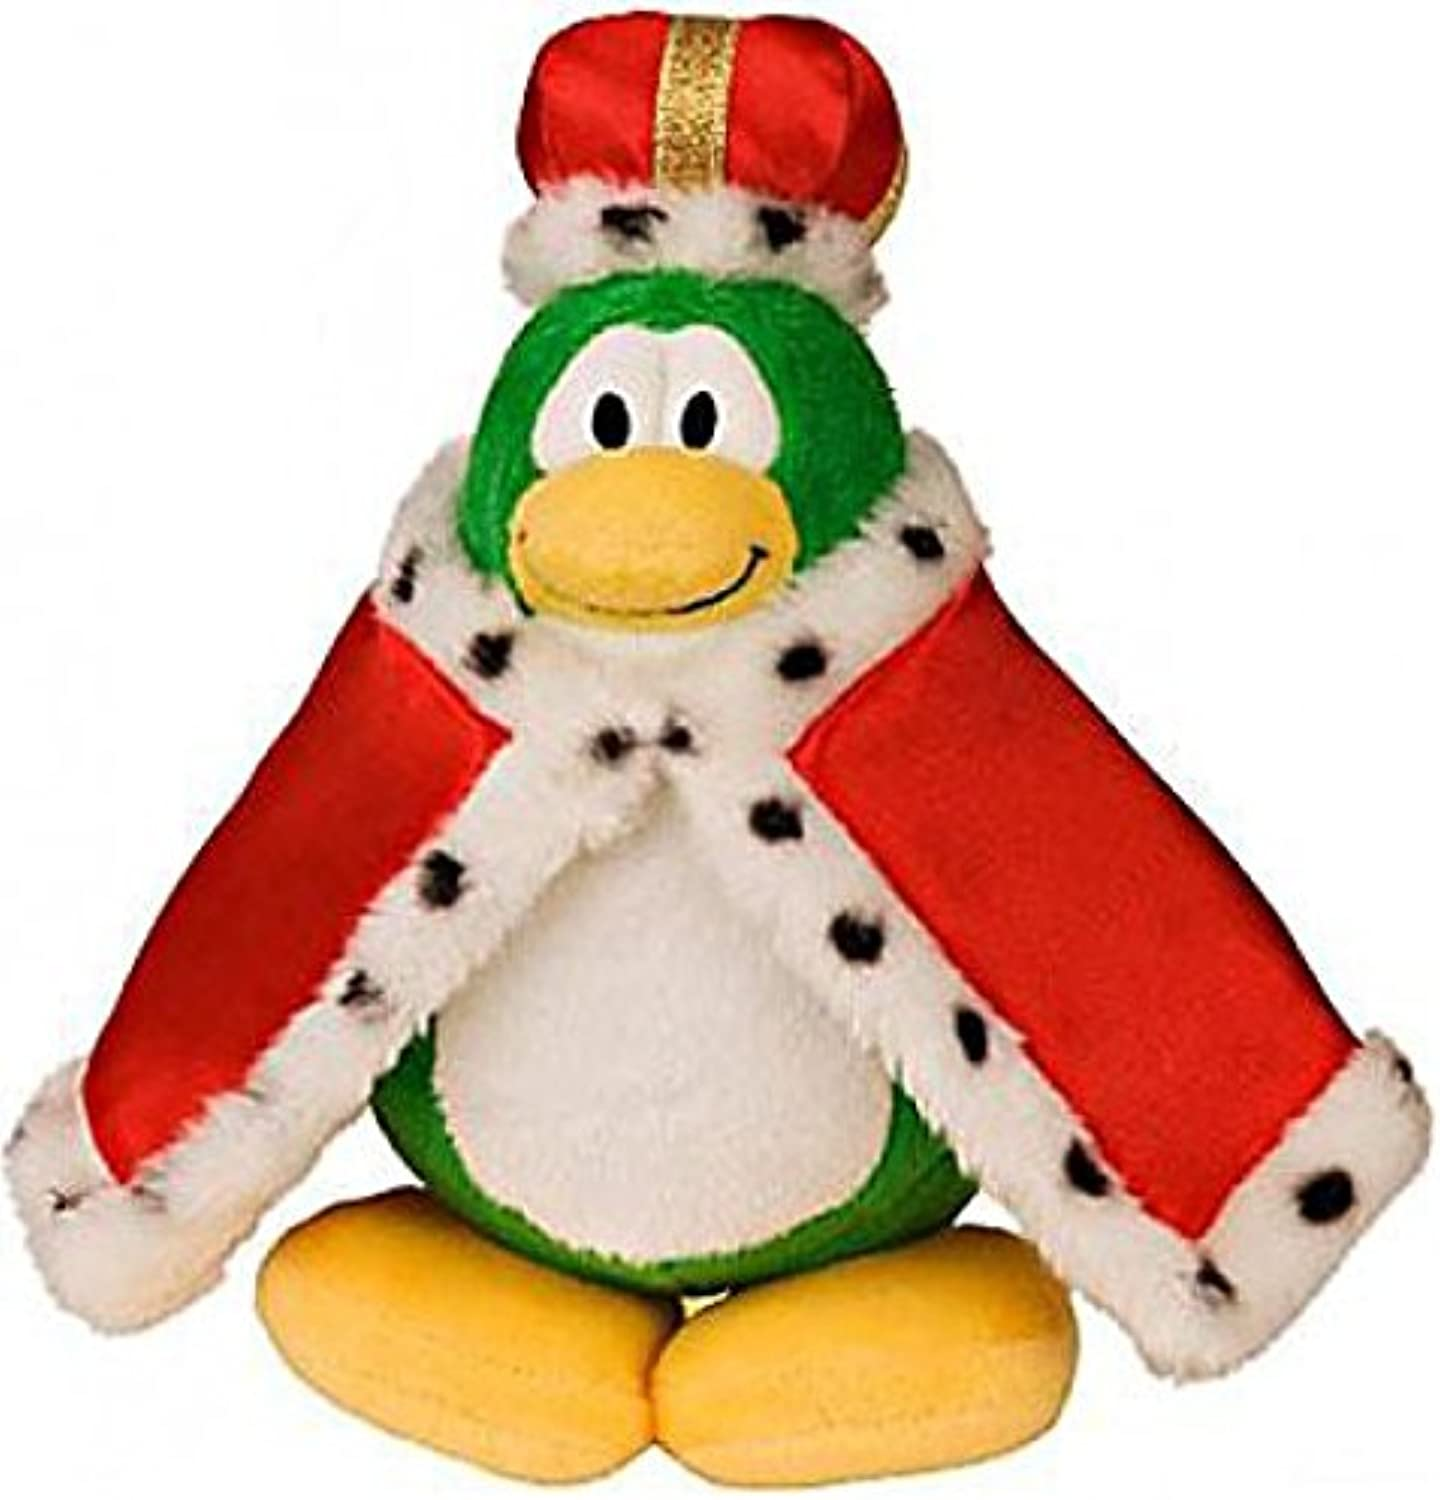 Disney Club Penguin 6.5 Inch Series 2 Plush Figure King (Includes Coin with Code )